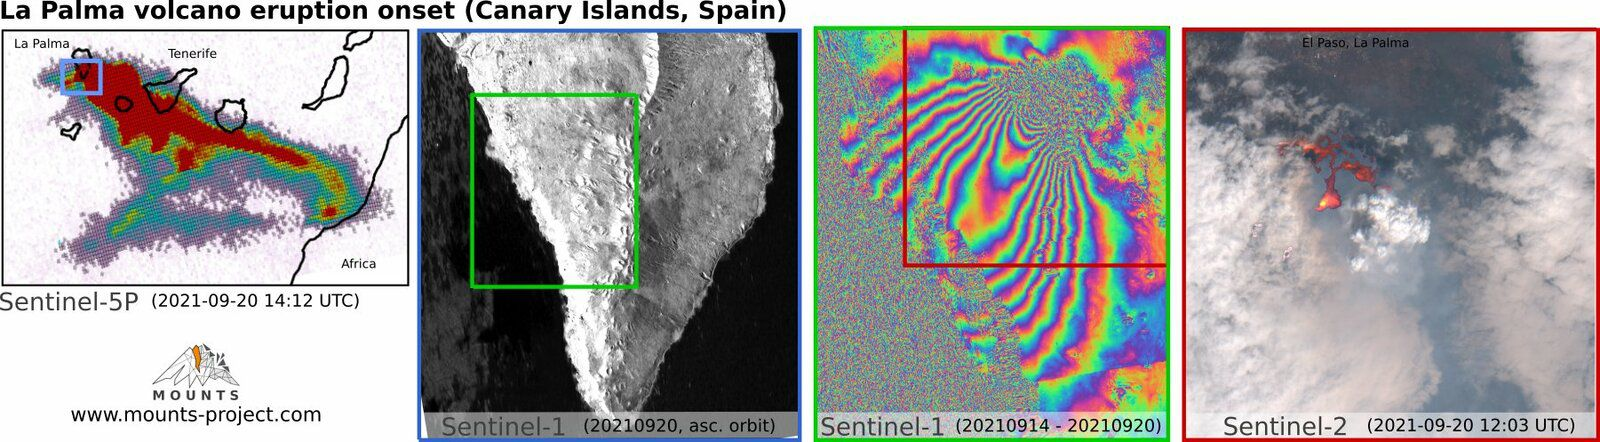 Sentinel-5P / Tropomi for SO2 emissions; Sentinel-1 for deformation; Sentinel-2 for thermal anomalies / the Sentinel system has been activated by the European Commission with Copernicus - Doc. Mounts project / Twitter compte @MountsSystem. - one click to enlarge